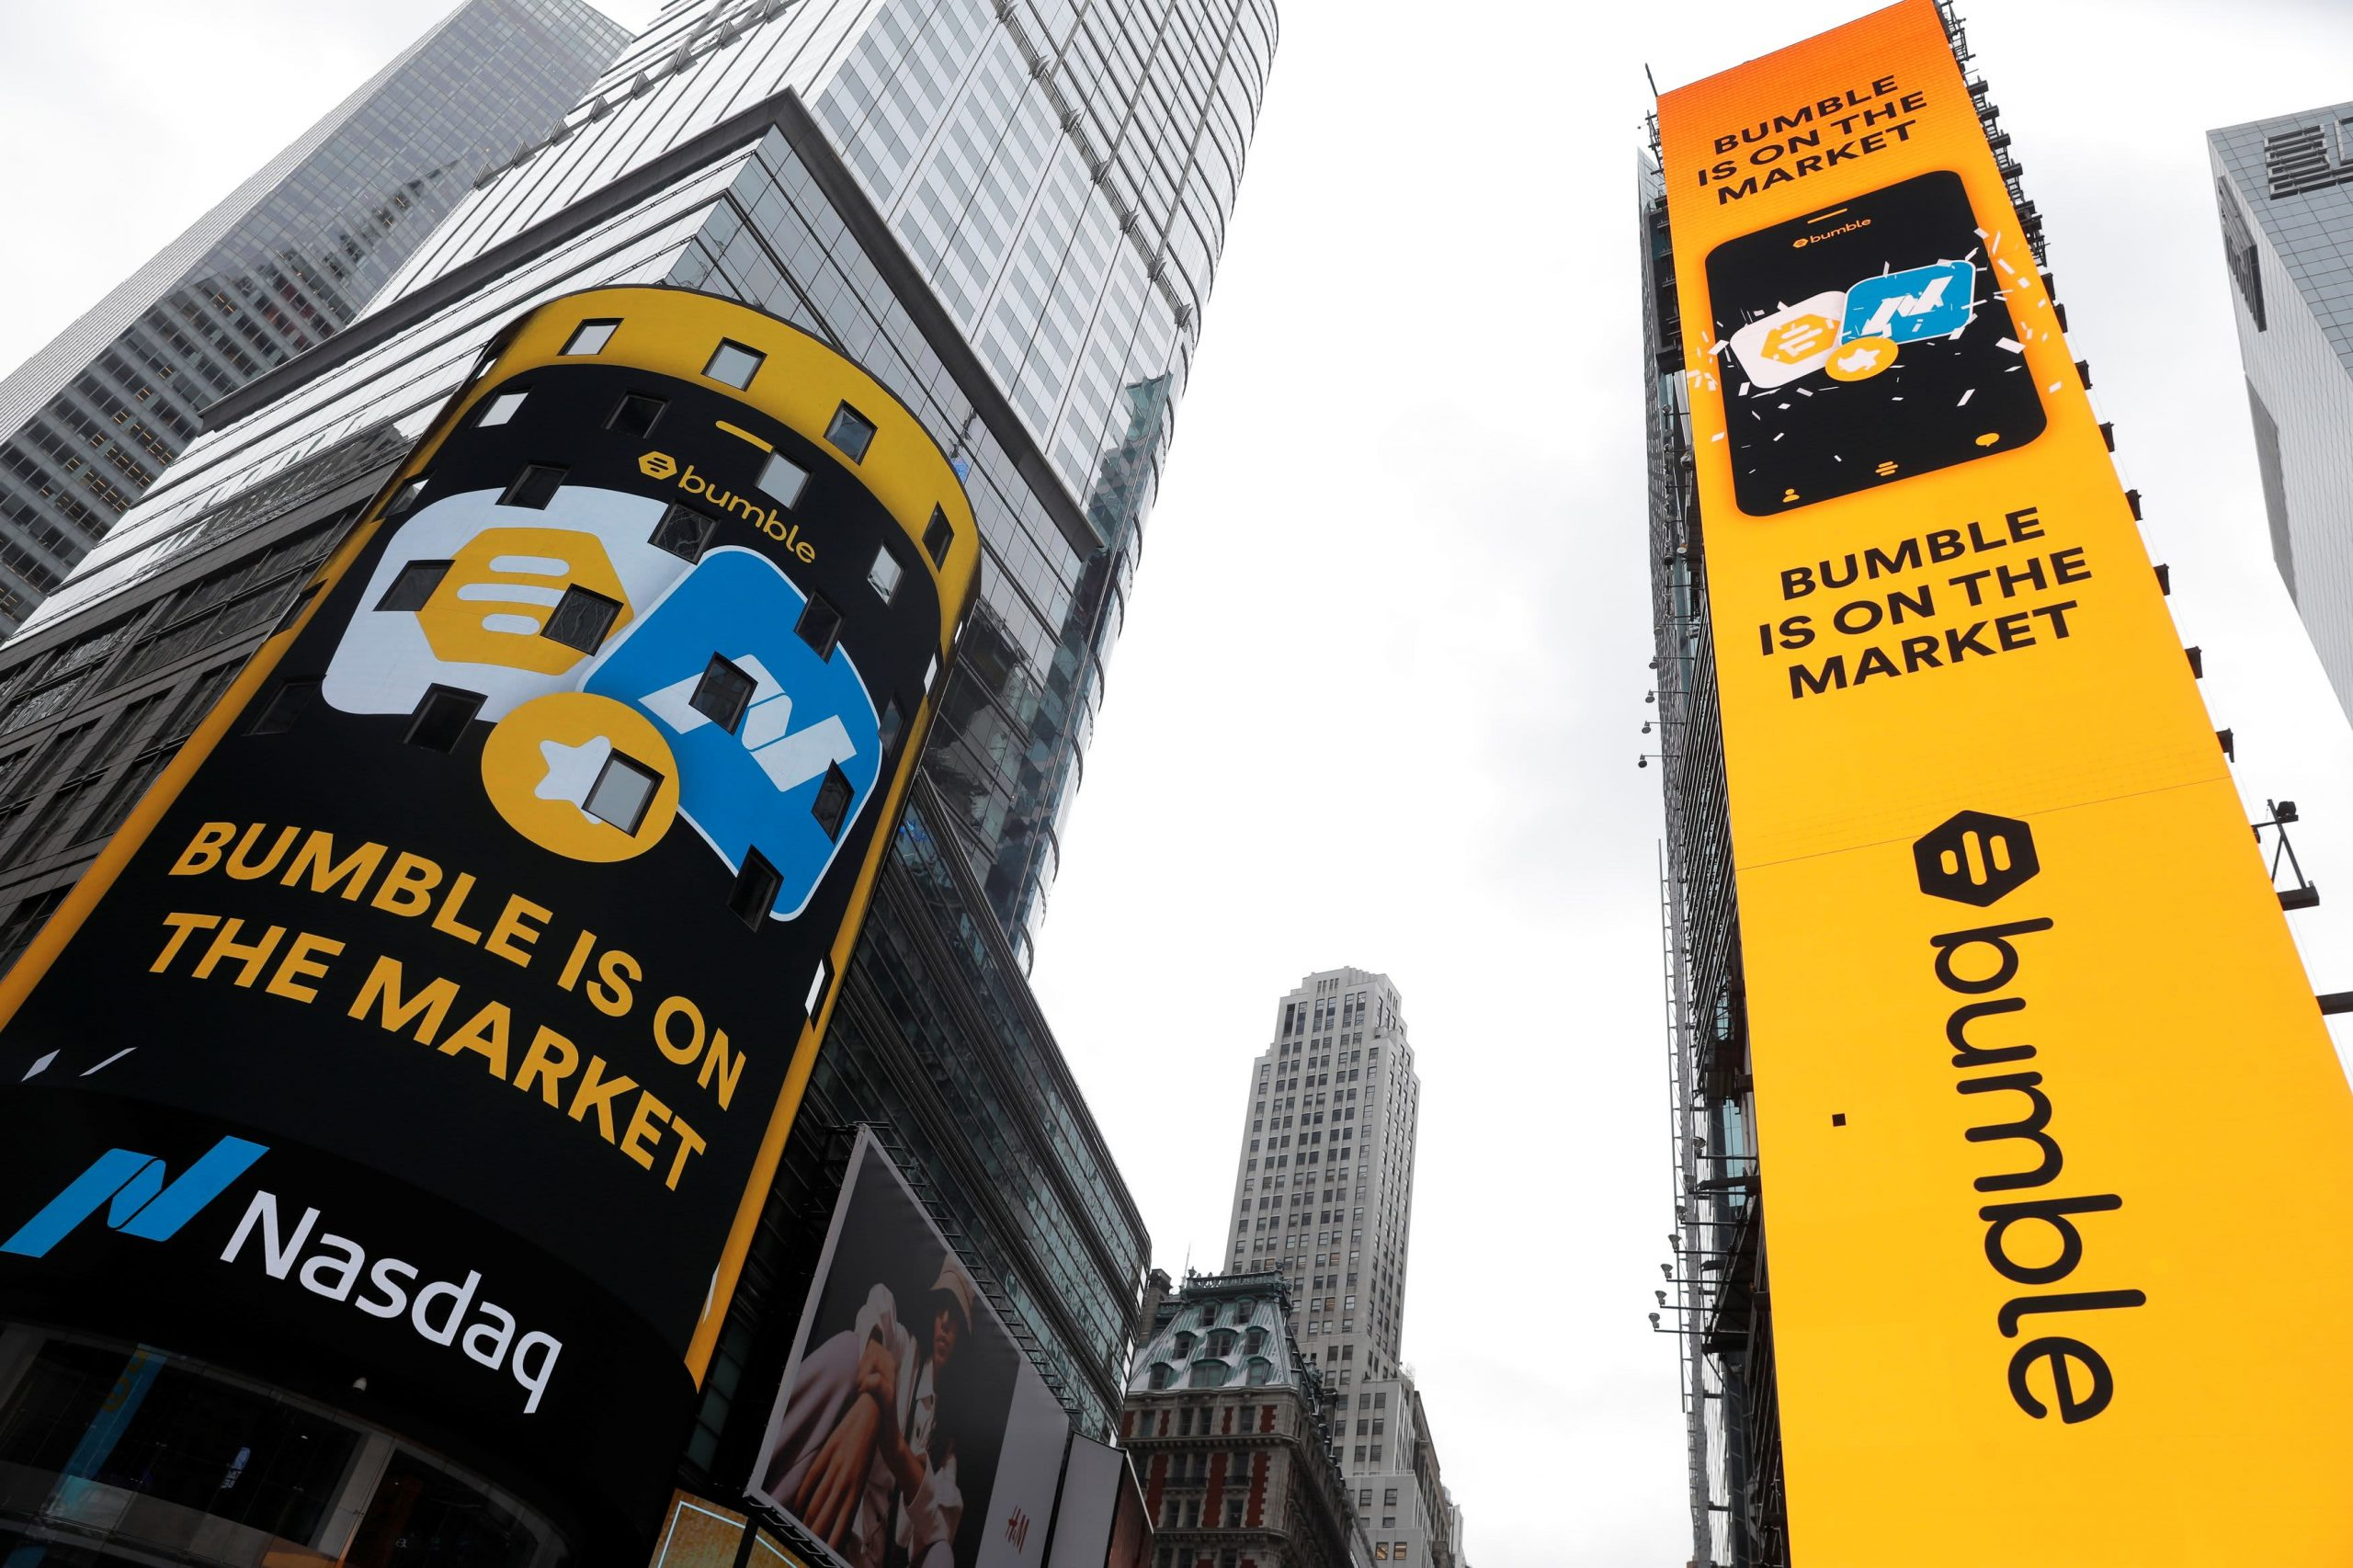 Bumble stock closes up 63% after soaring in market debut